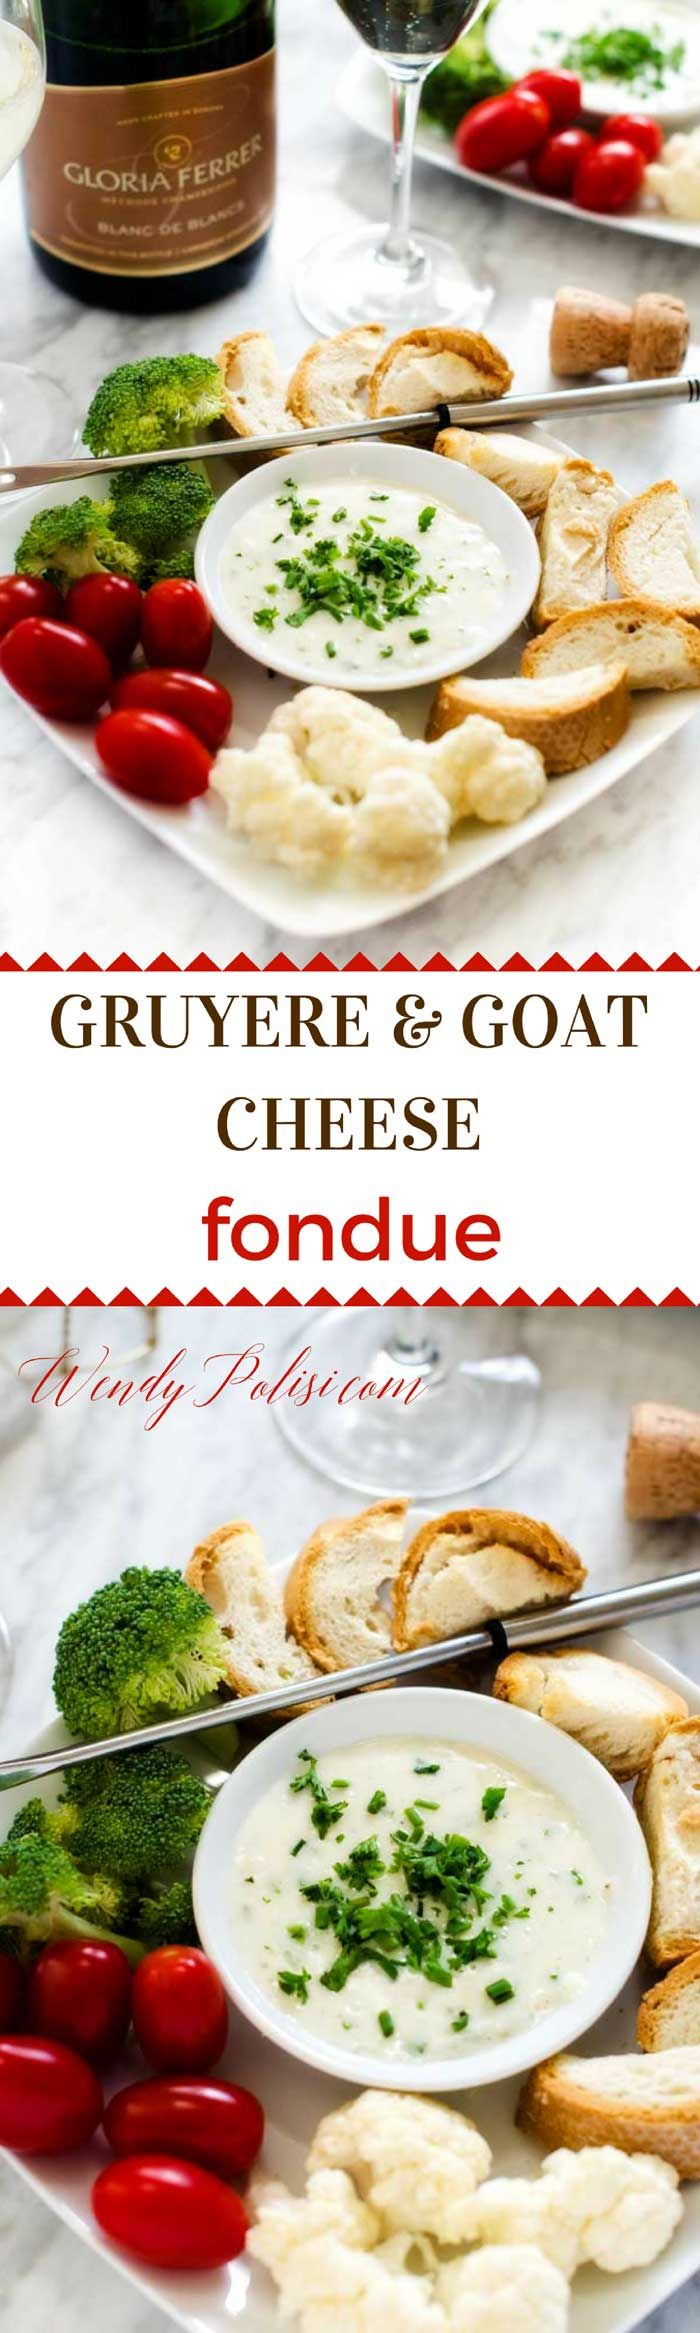 This Goat Cheese & Gruyere Fondue is the perfect easy way to elevate any evening!  #LifeGlorified #CLVR #ad @GloriaFerrer